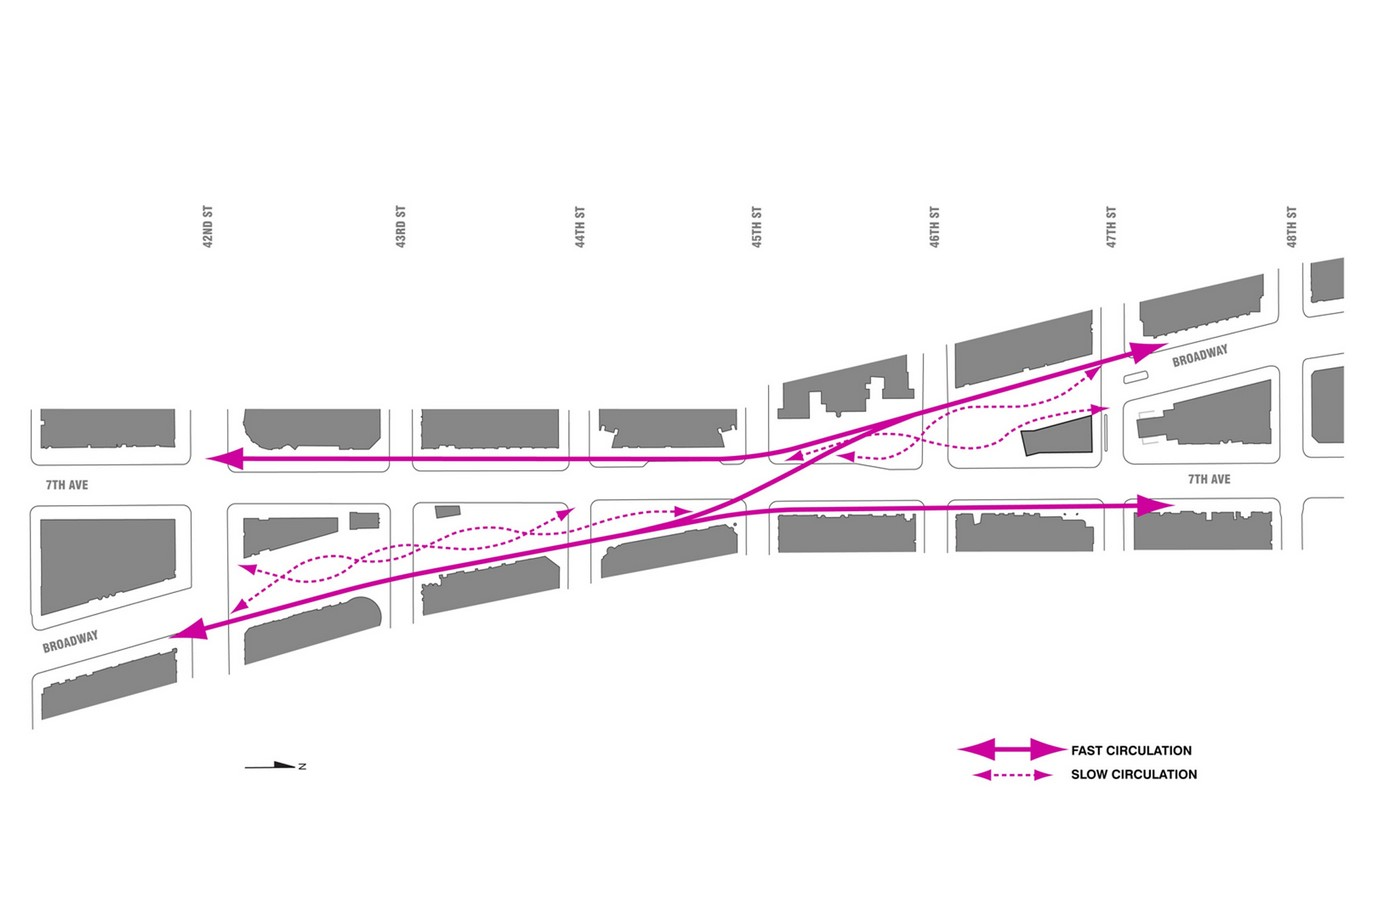 Architectural development of Times Square - Sheet5